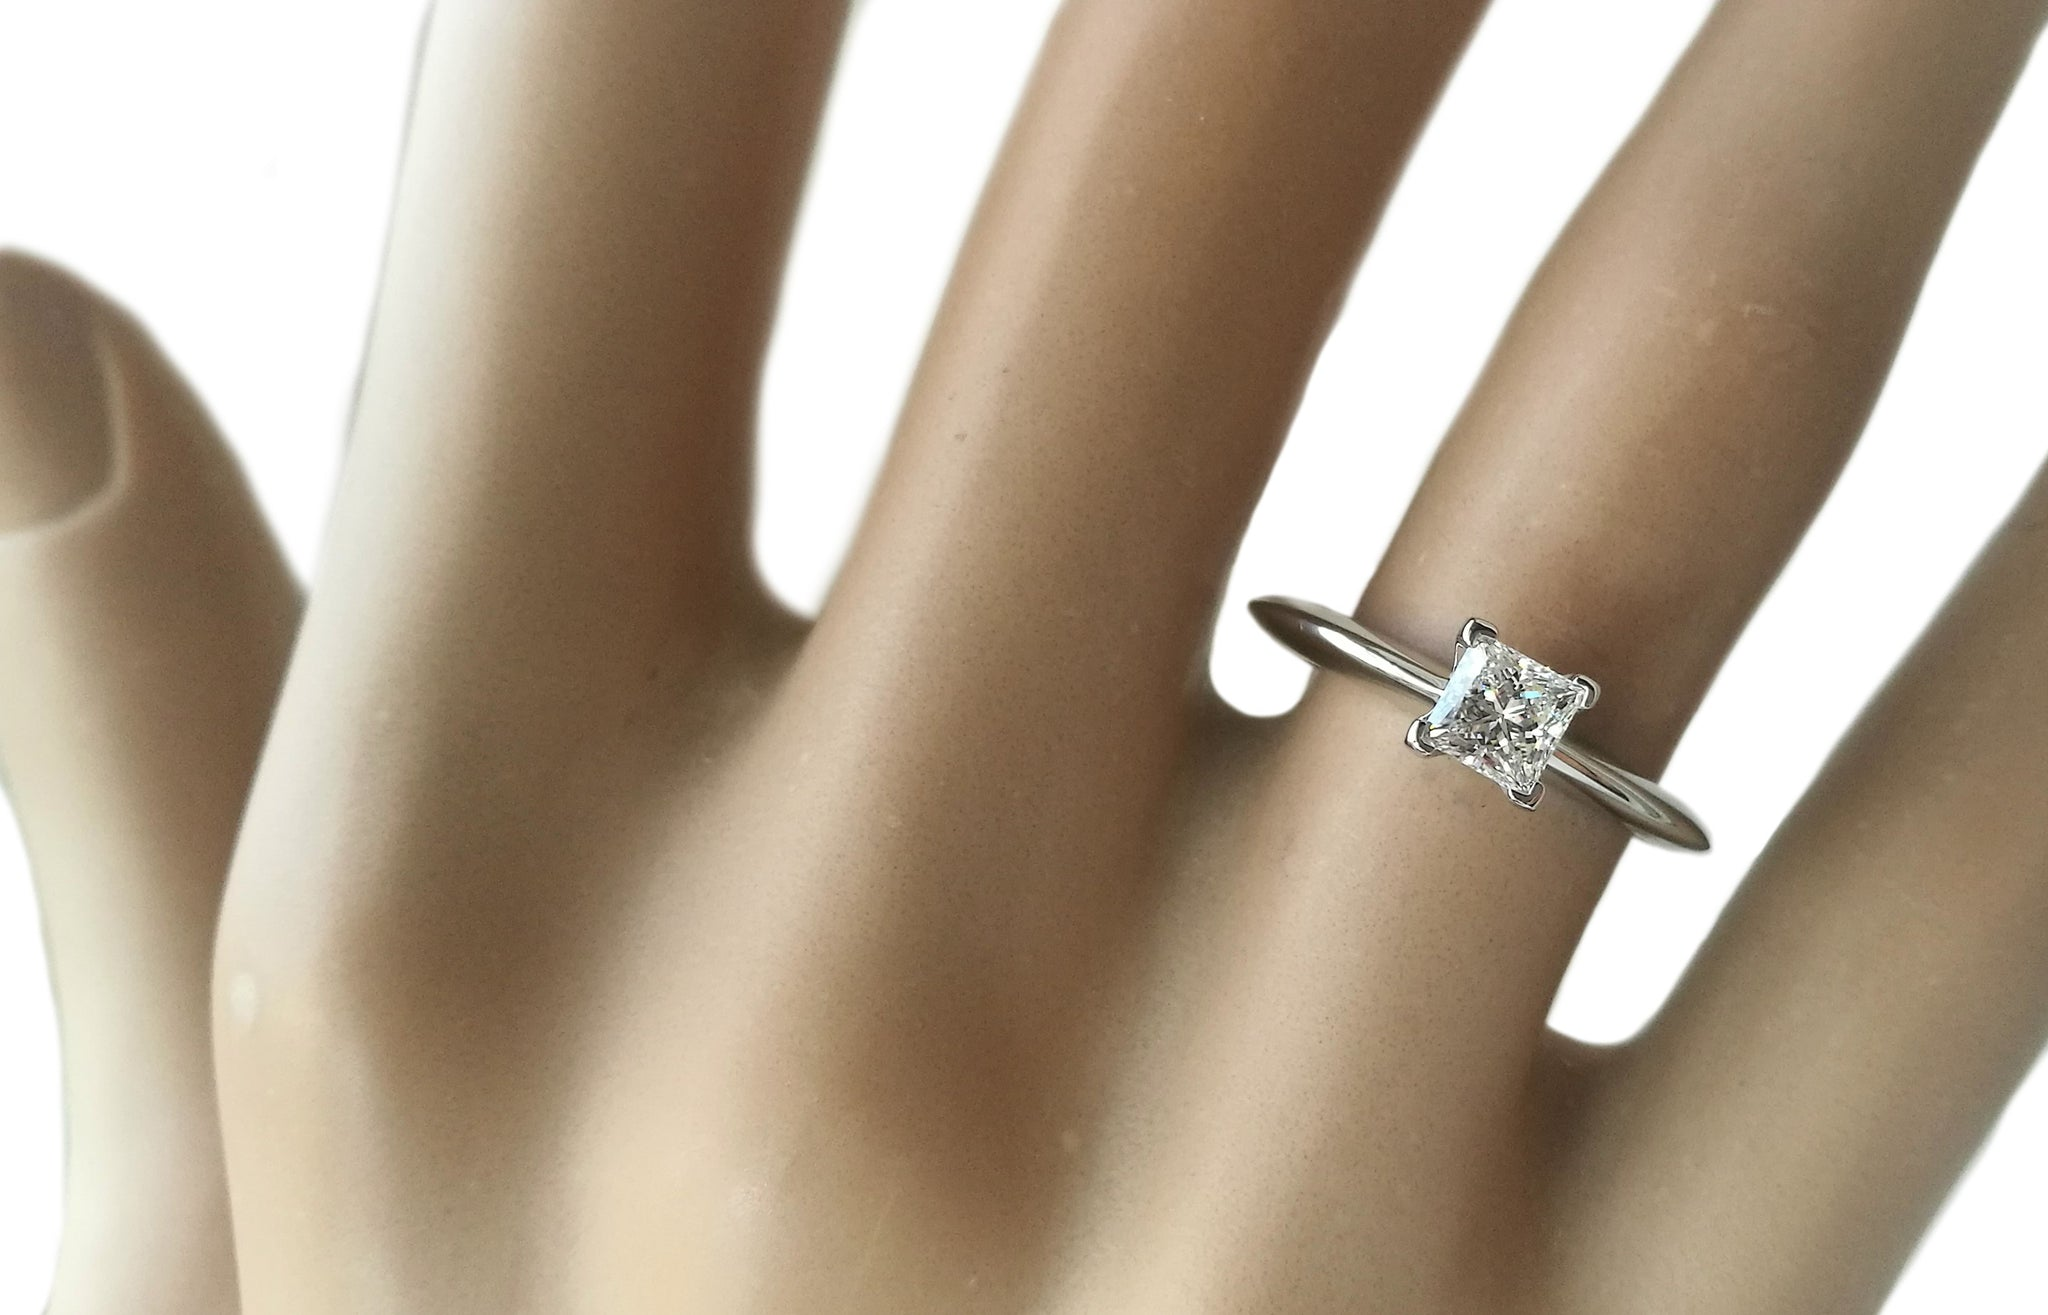 Tiffany & Co. 0.41ct G/SI1 Princess Cut Diamond Engagement Ring